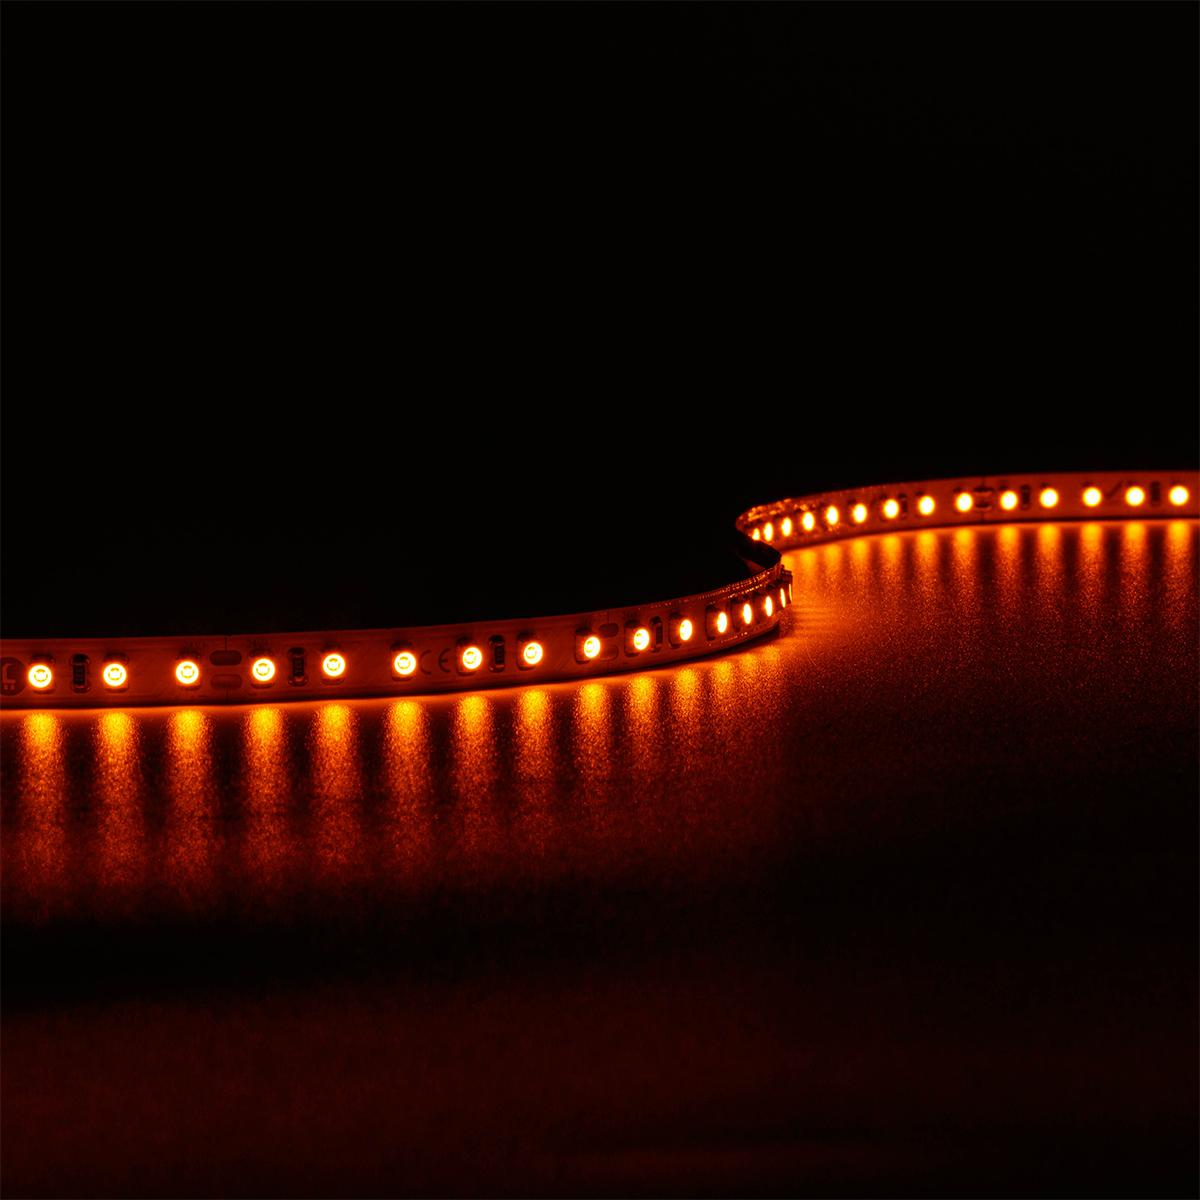 Strip Amber Bernstein 24V LED Streifen 9,6W/m 120LED/m IP20 2300K